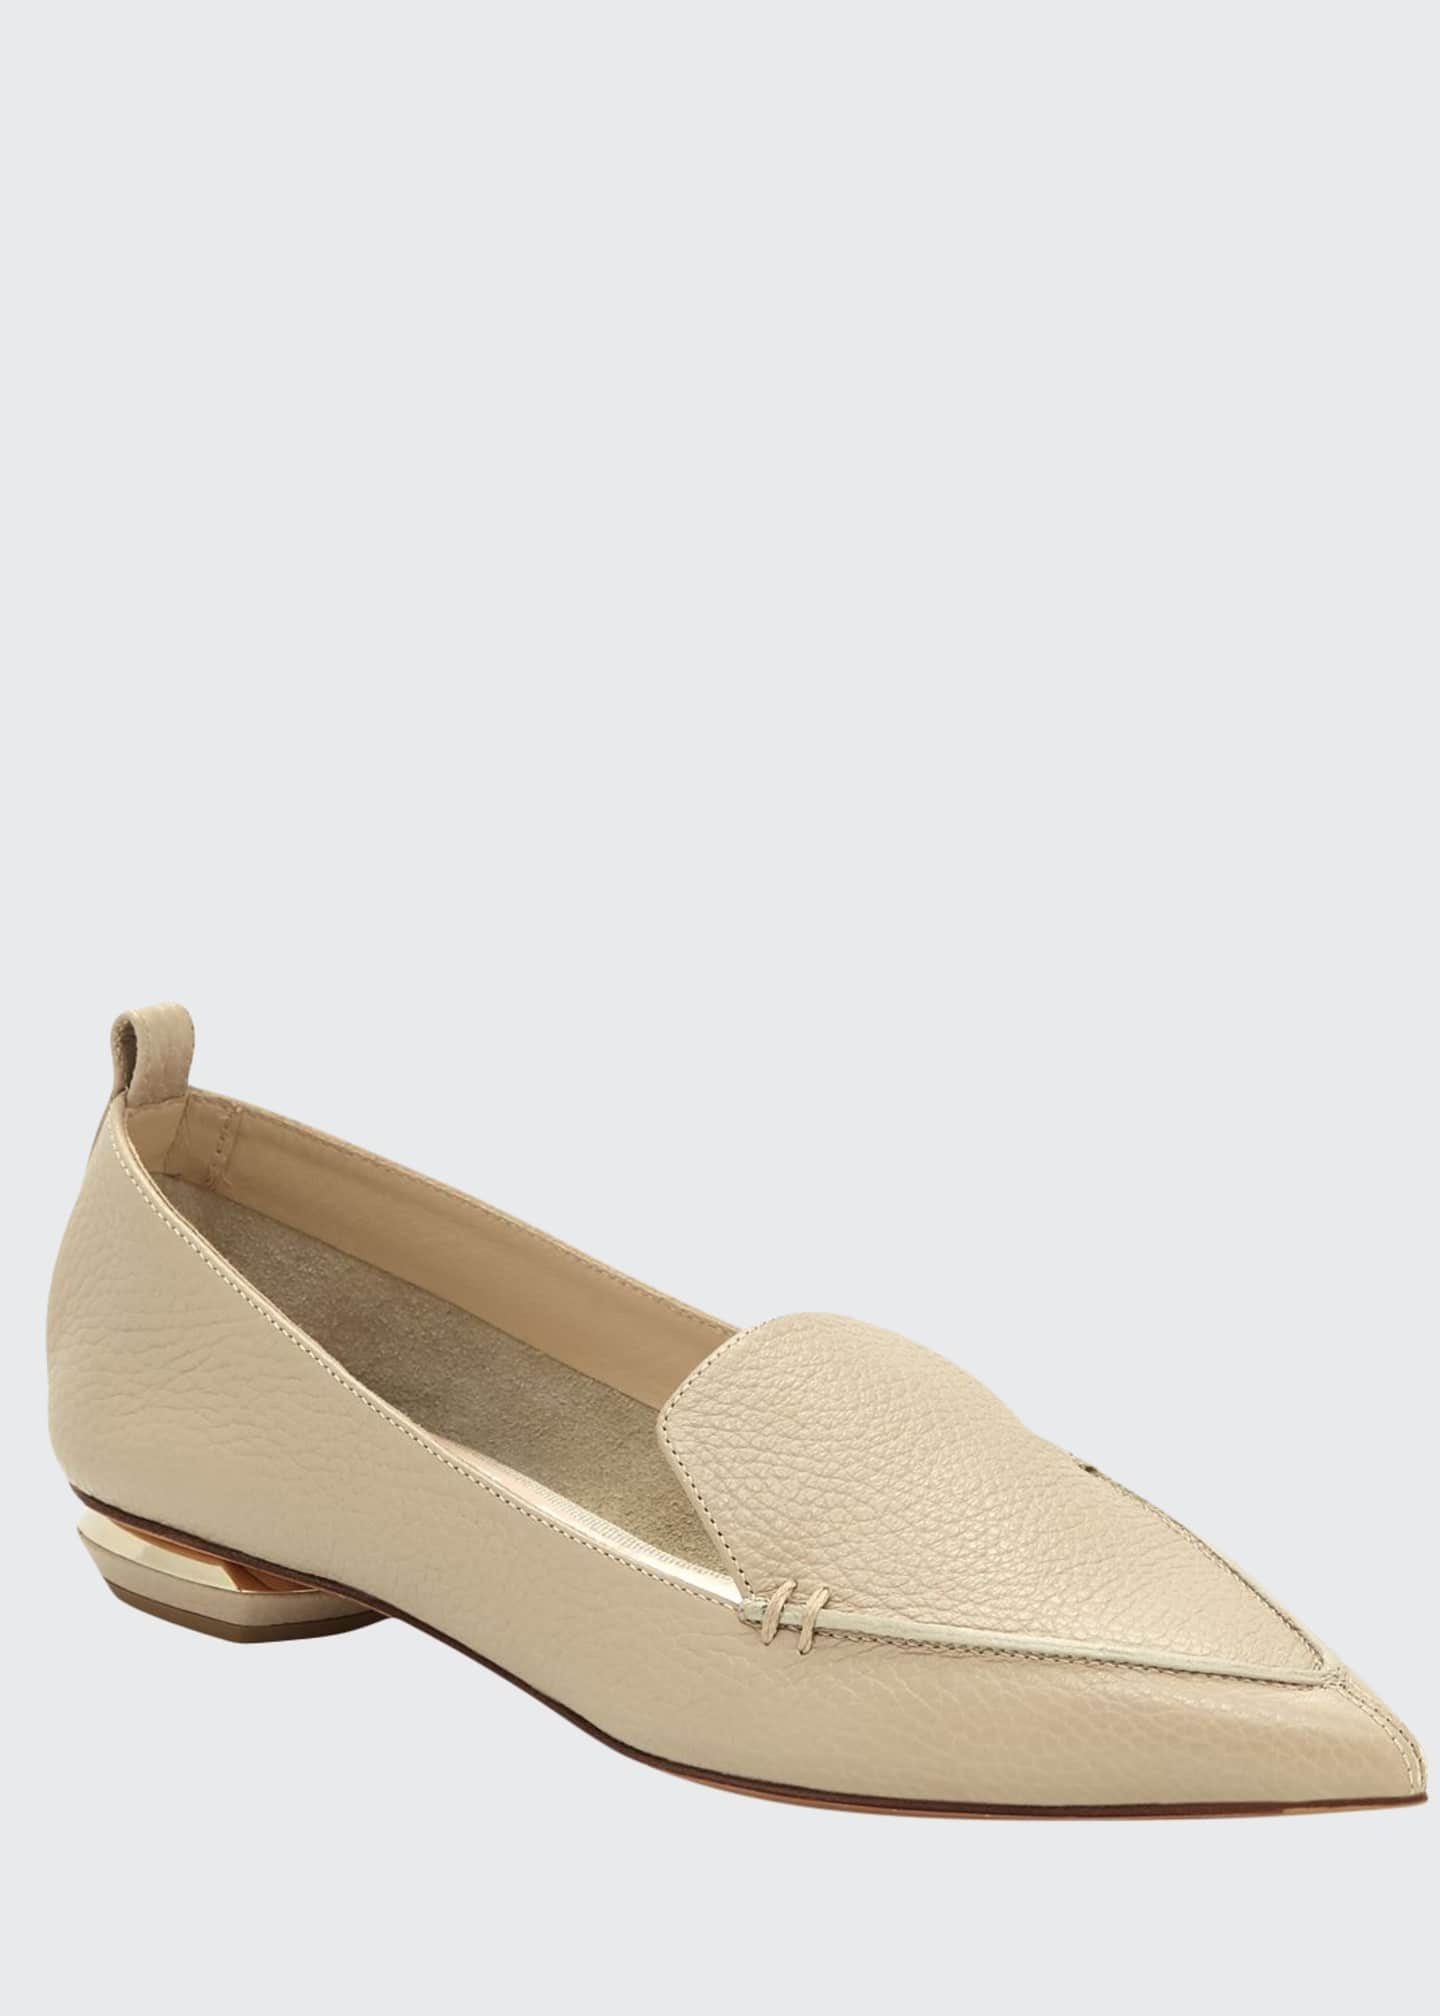 Image 1 of 3: Beya Leather Loafer, Sand